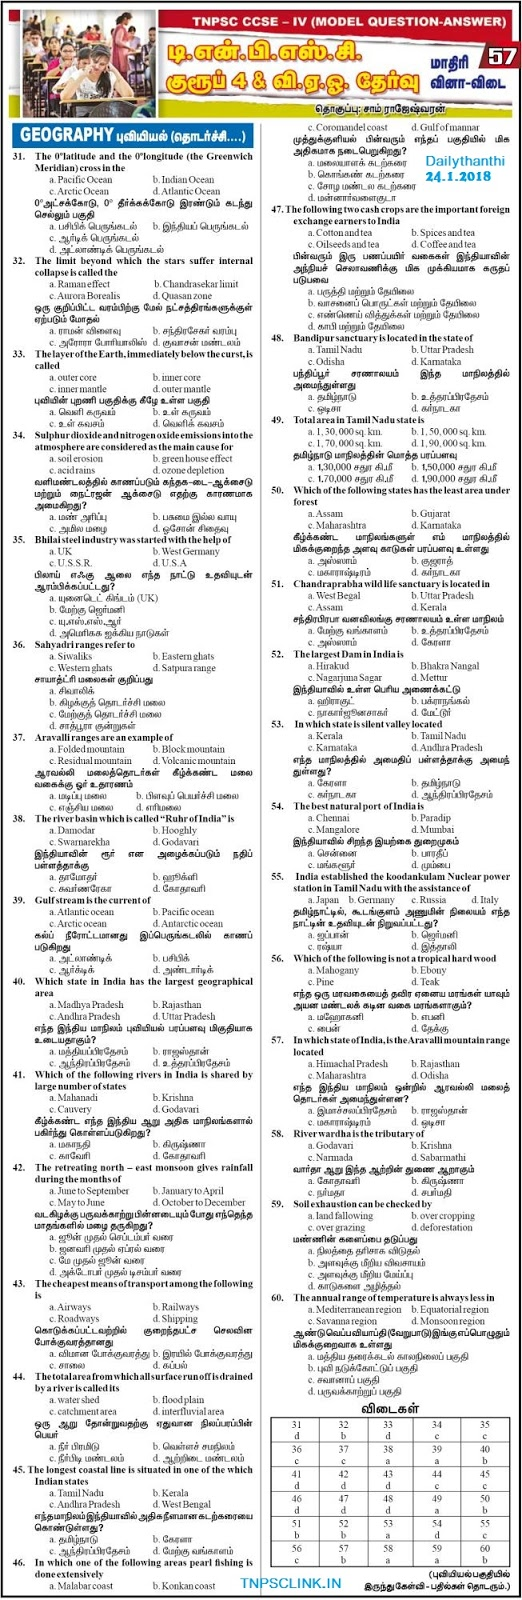 TNPSC Group 4 Geography Model Papers - Dinathanthi Jan 24, 2018, Download as PDF